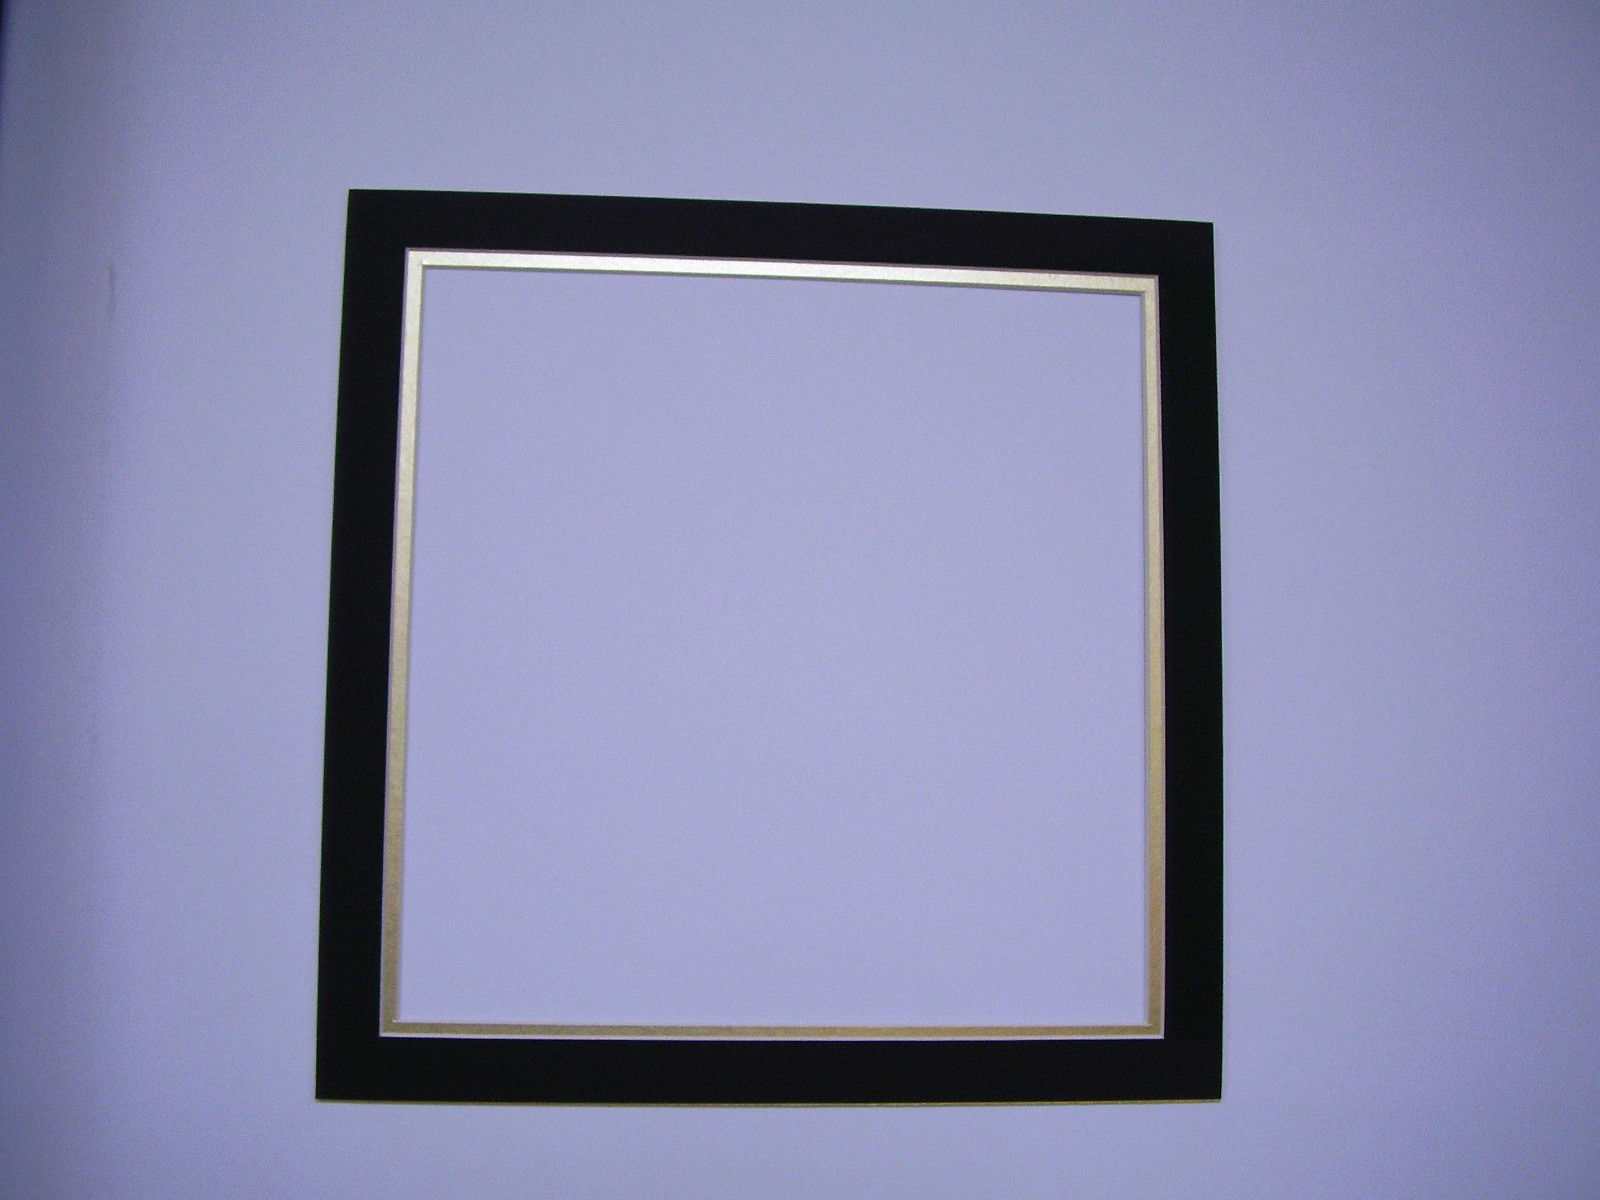 picture frame double mat 14x14 for photo black with gold custom framing mats. Black Bedroom Furniture Sets. Home Design Ideas